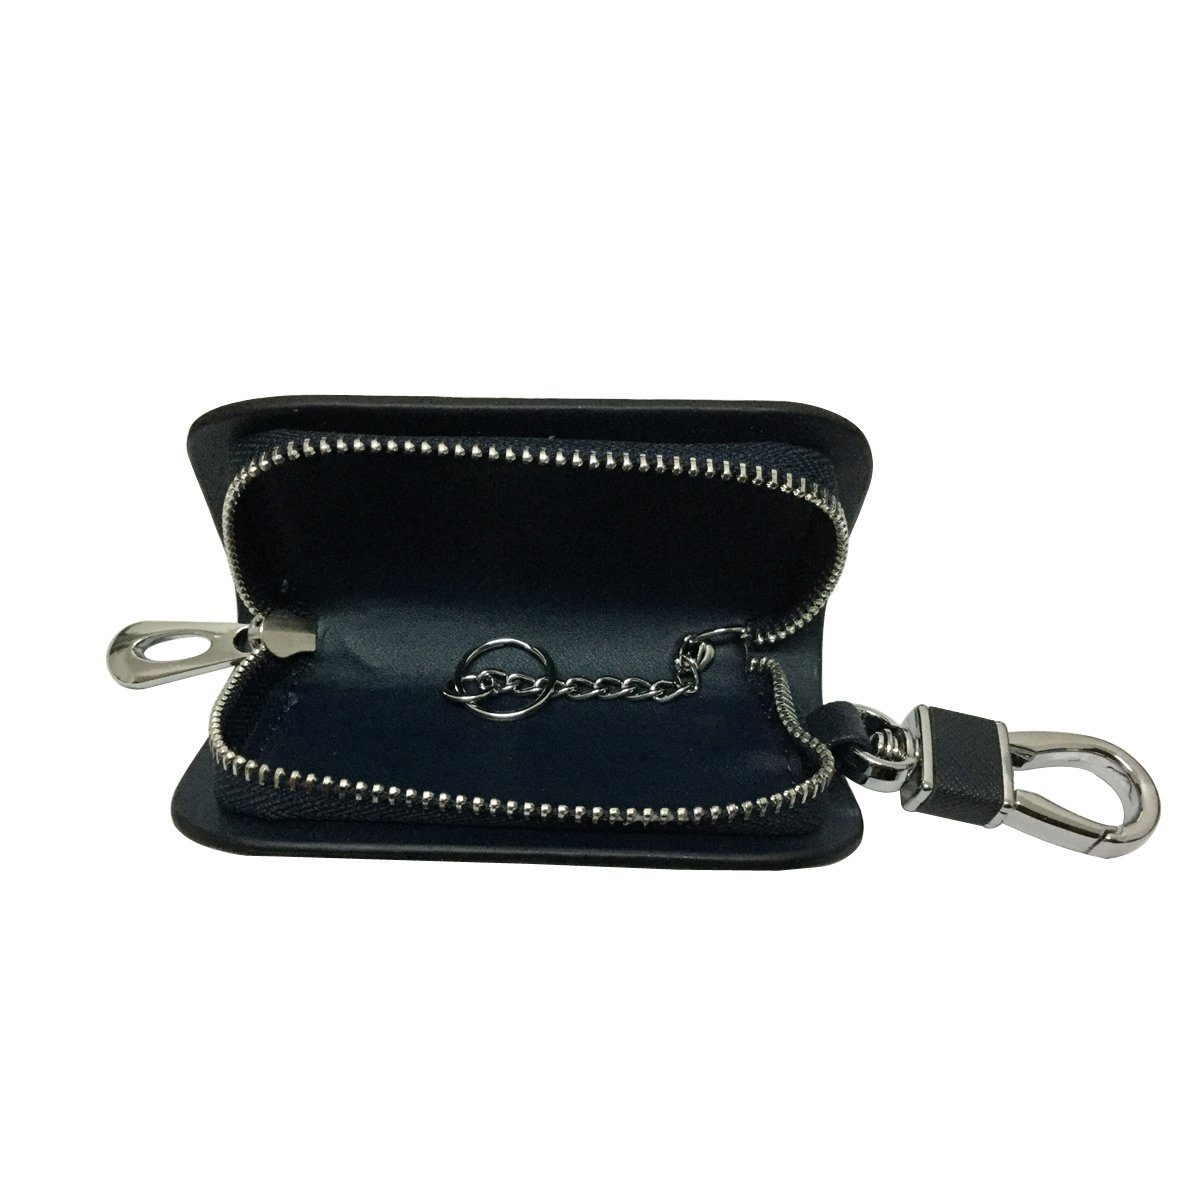 New 1pcs Mesh Black Leather Car Key Wallet Zipper Case Keychain Coin Holder Metal Hook Bag Collection For Mustang Car Vehicle Auto Lover